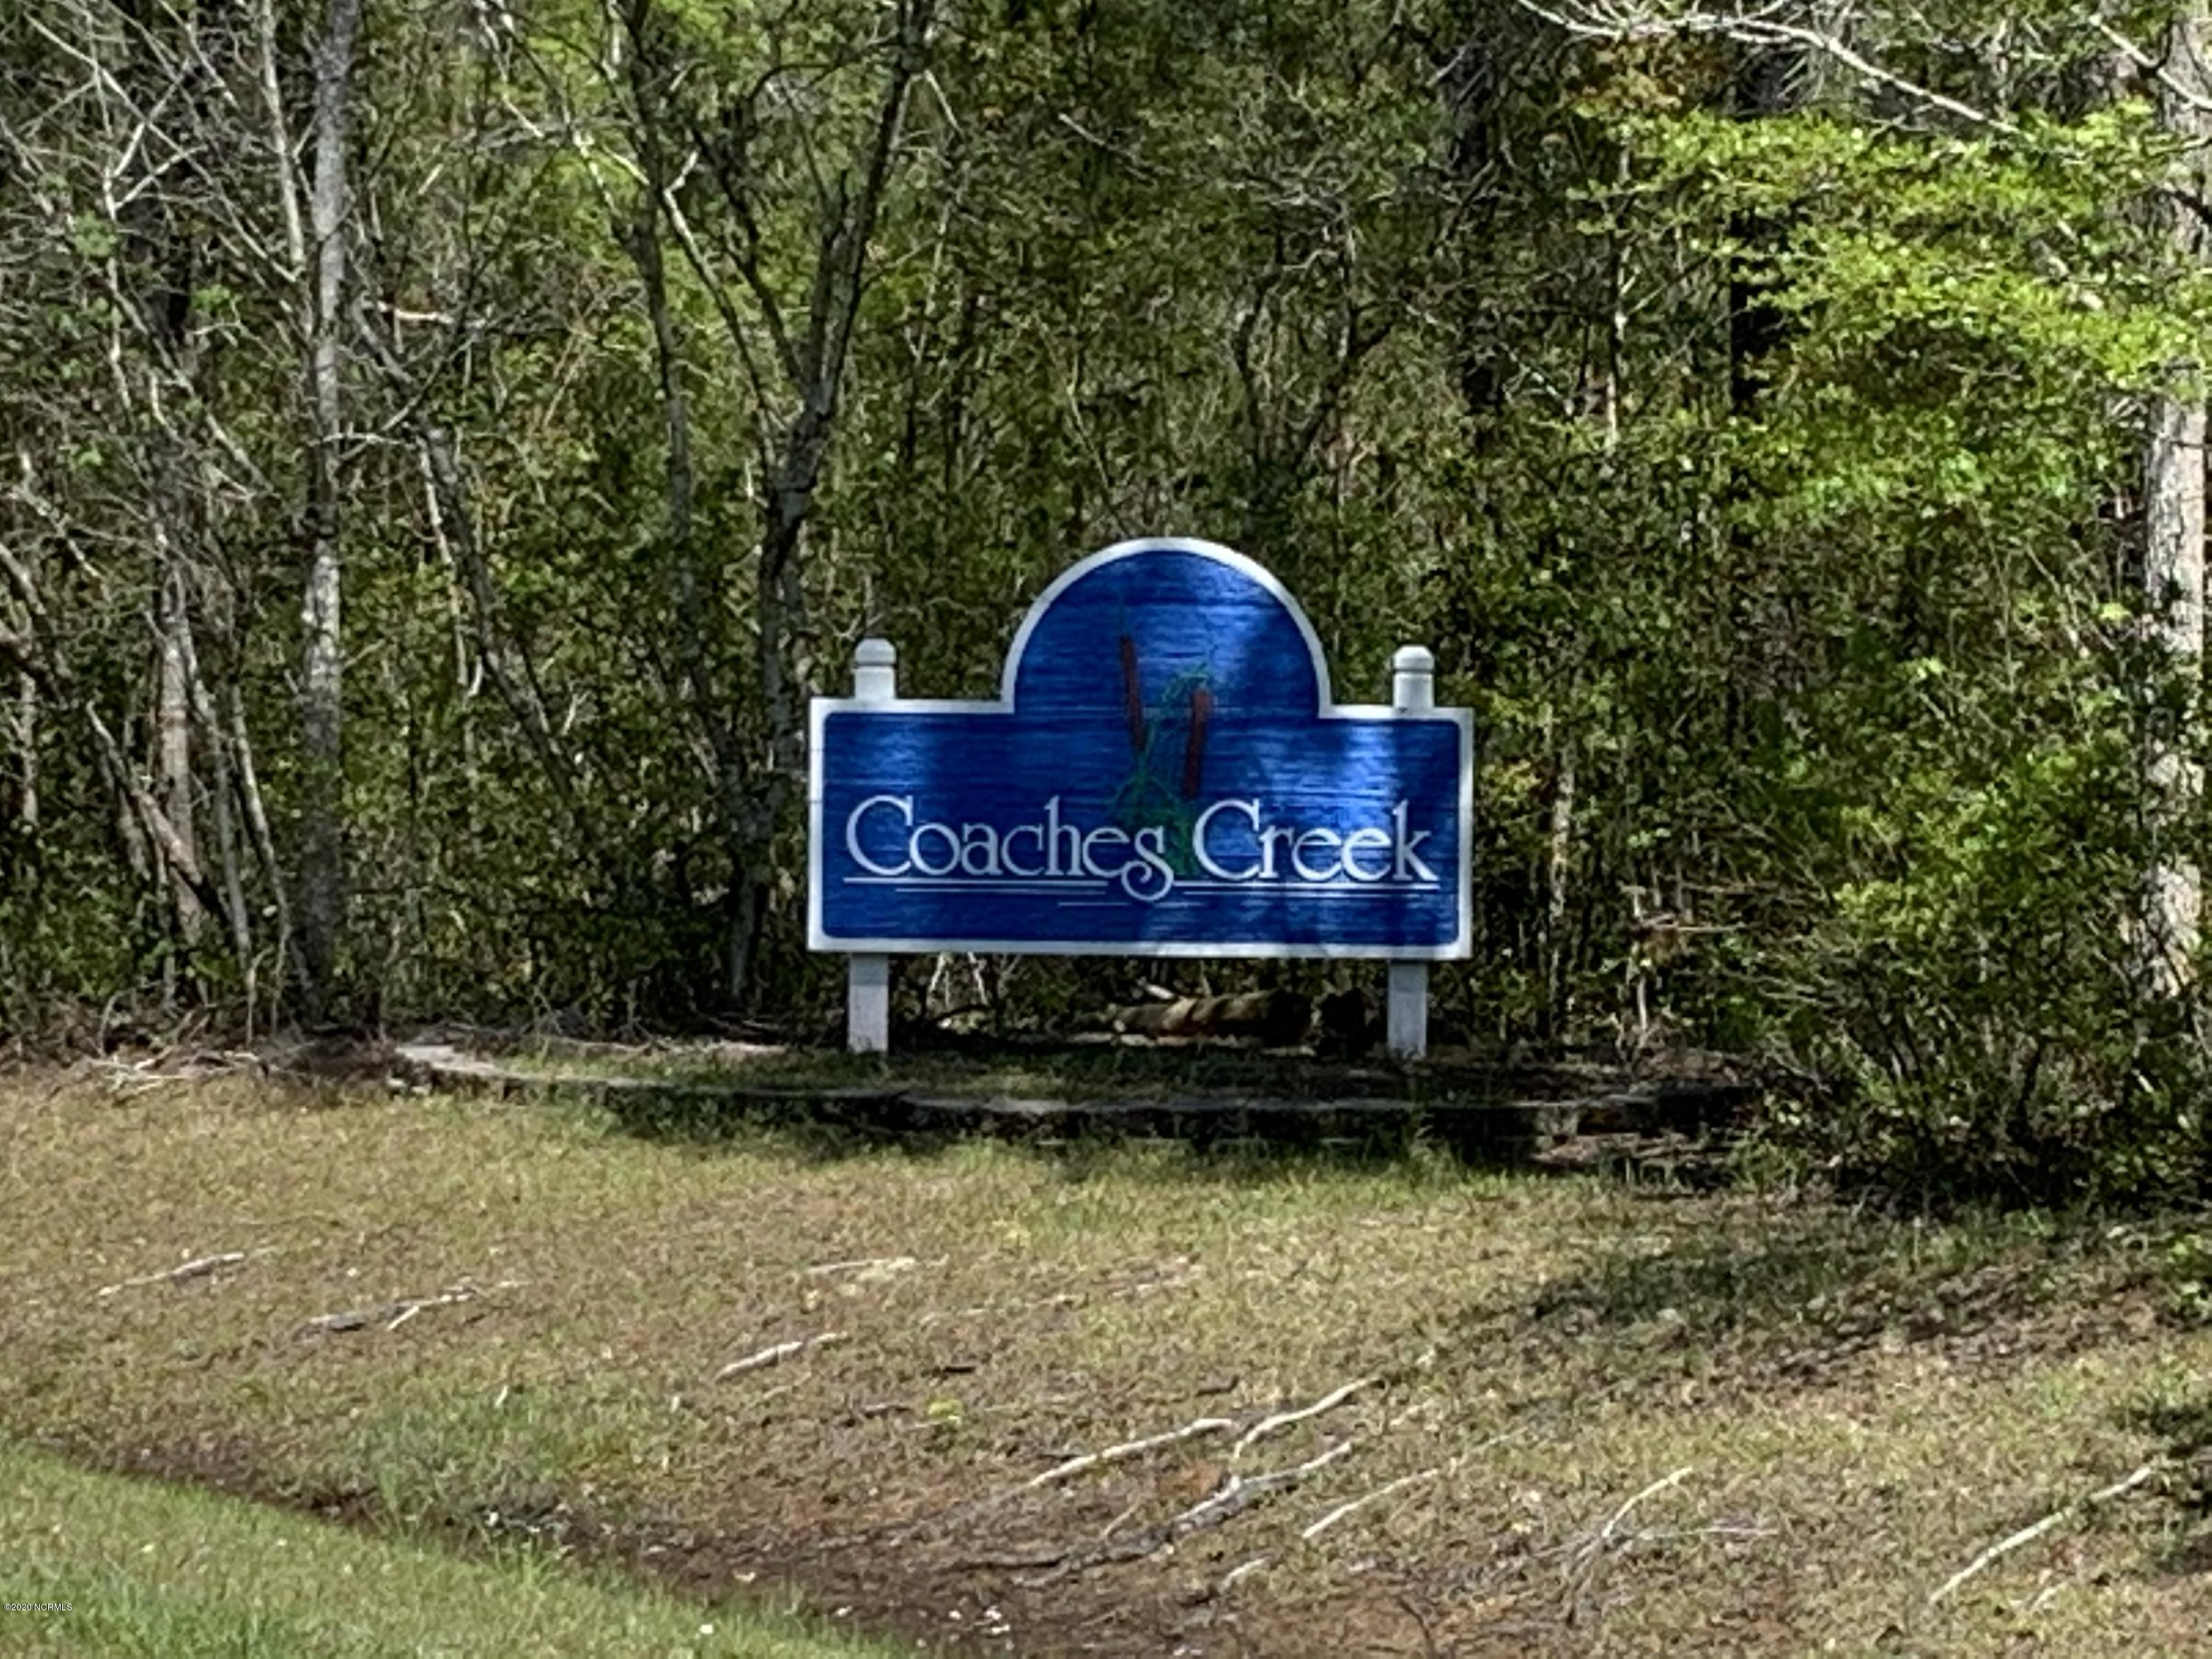 109 Coaches Creek Drive, Havelock, North Carolina 28532, ,Residential land,For sale,Coaches Creek,100213679